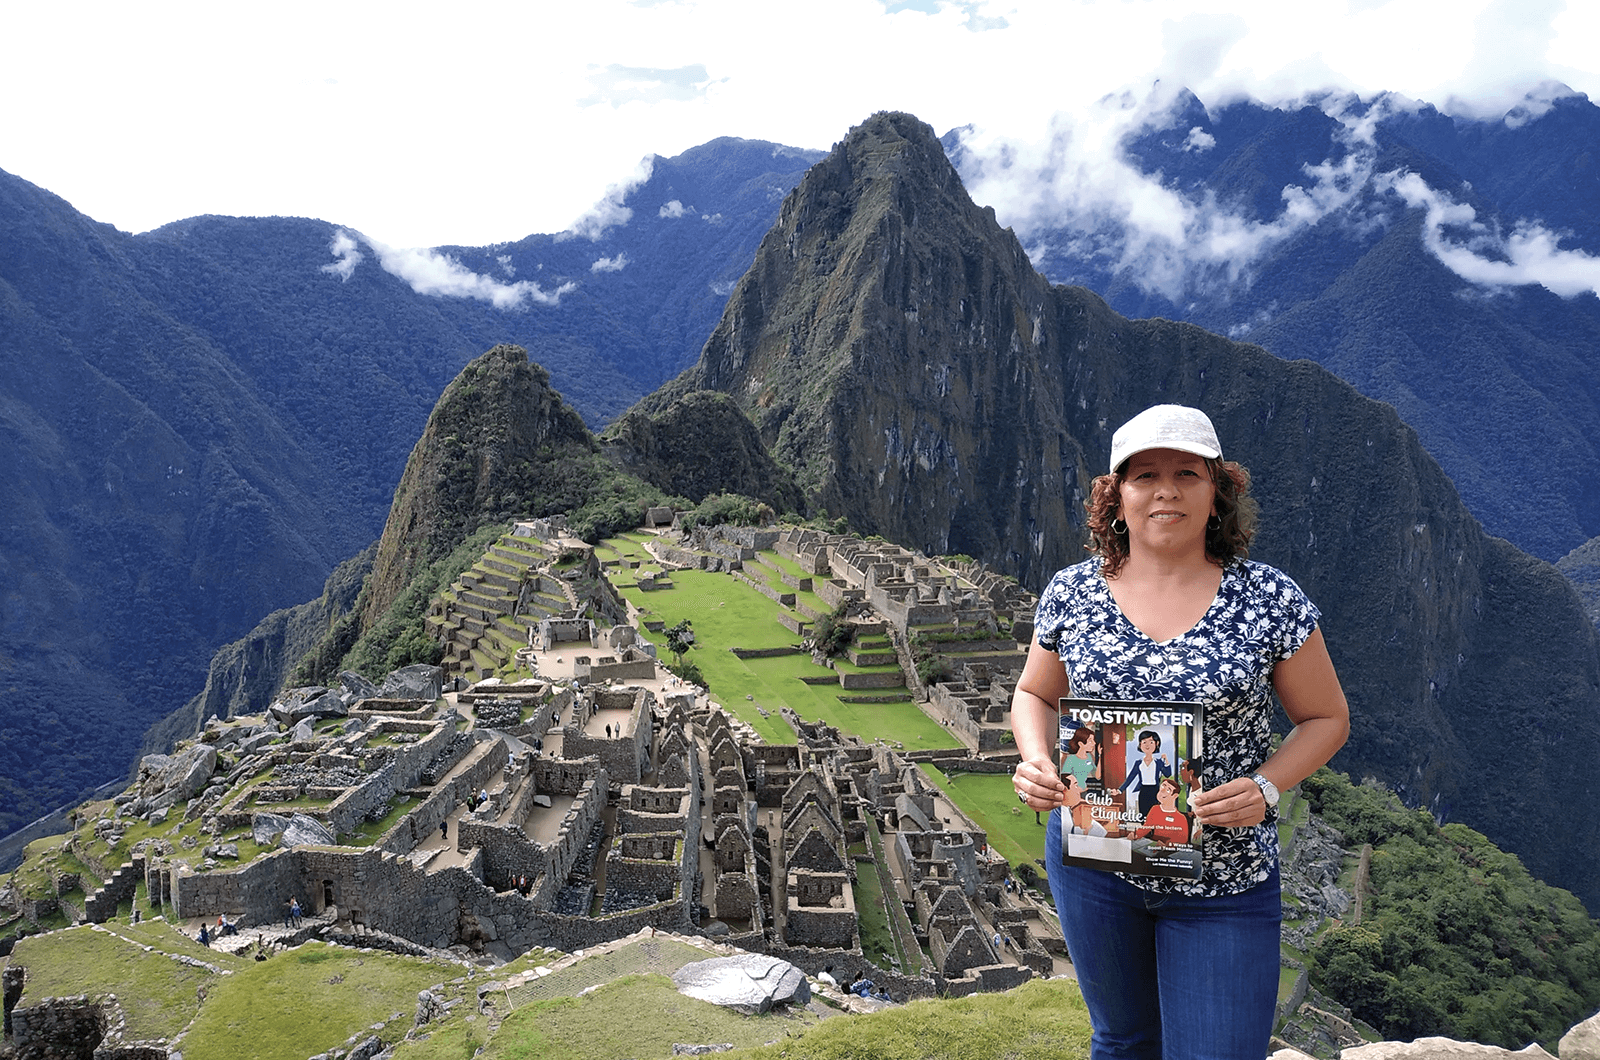 Alba Lucia Hincapie, CC, ALB, of Barcelona, Spain, visits the ruins of Machu Picchu, the 15th-century Inca citadel located 2,430-meters/7,790-feet above sea level in Cusco, Perú.